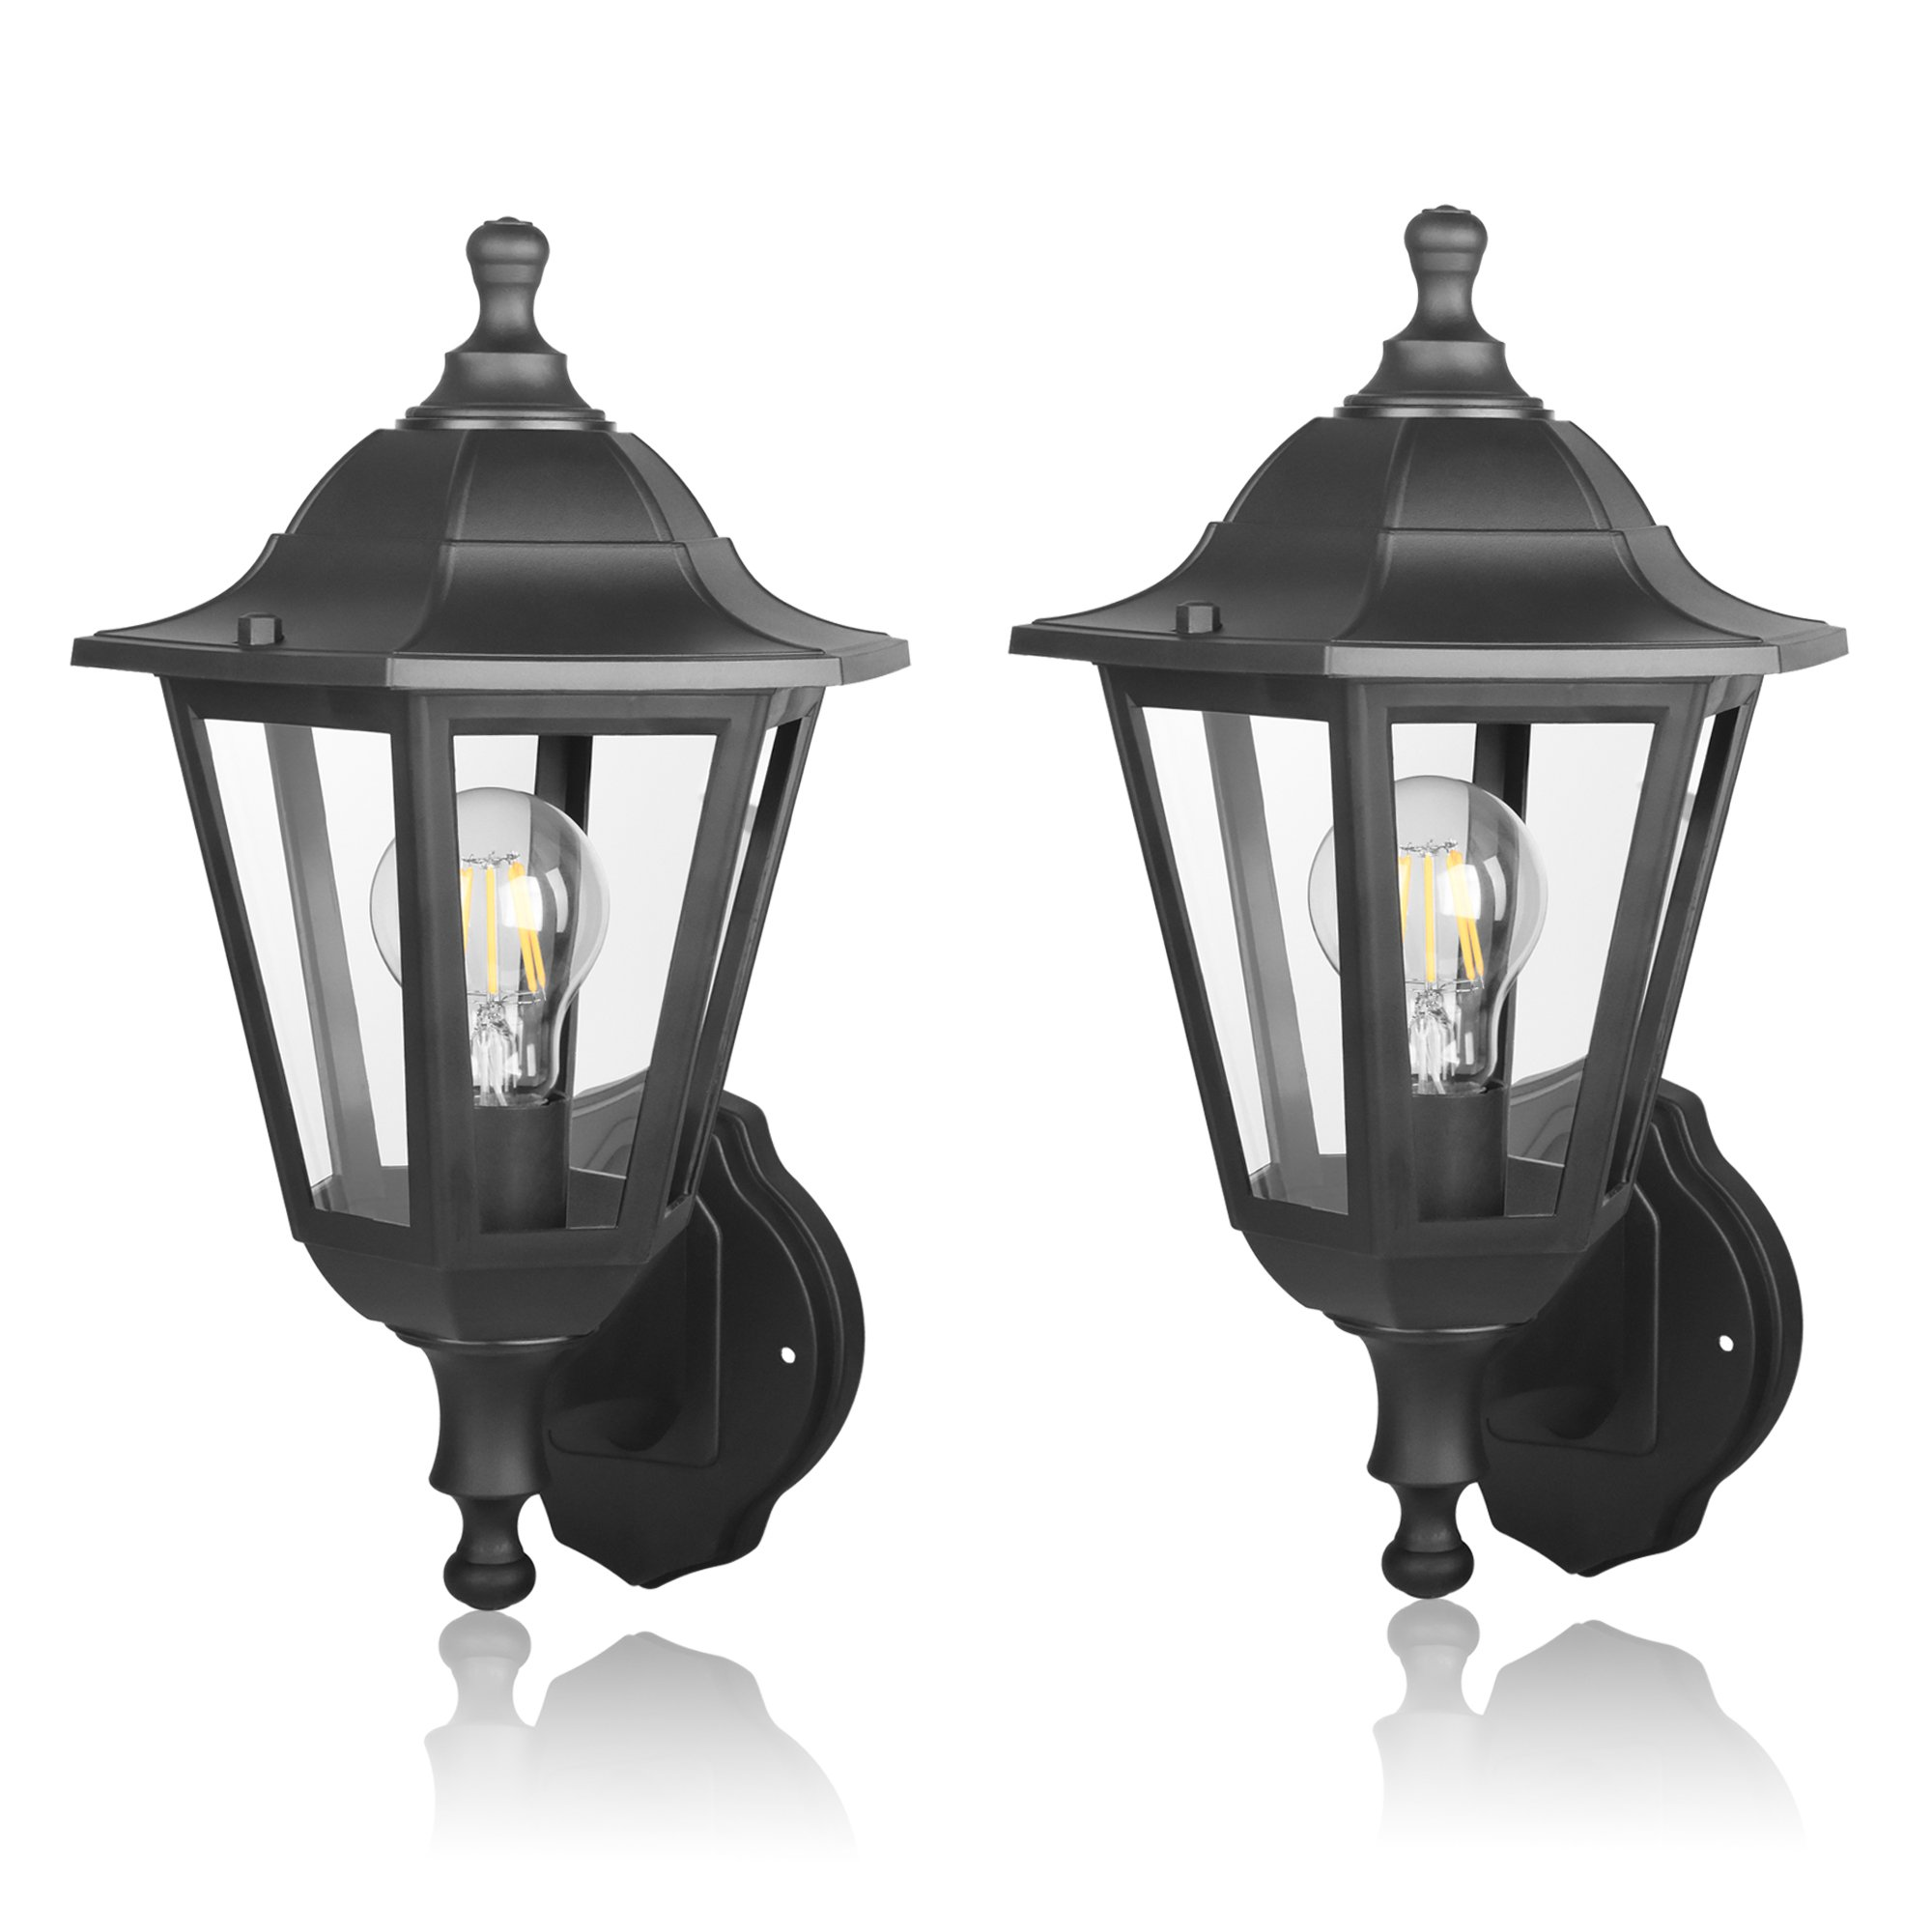 UNITEC LIGHTING Outdoor Wall Lantern LED Light Fixtures, Pro Plastic Material Innovation, Waterproof Exterior Mount Black Lanterns Lamp for Outside Porch, Garage (Pack of 2)